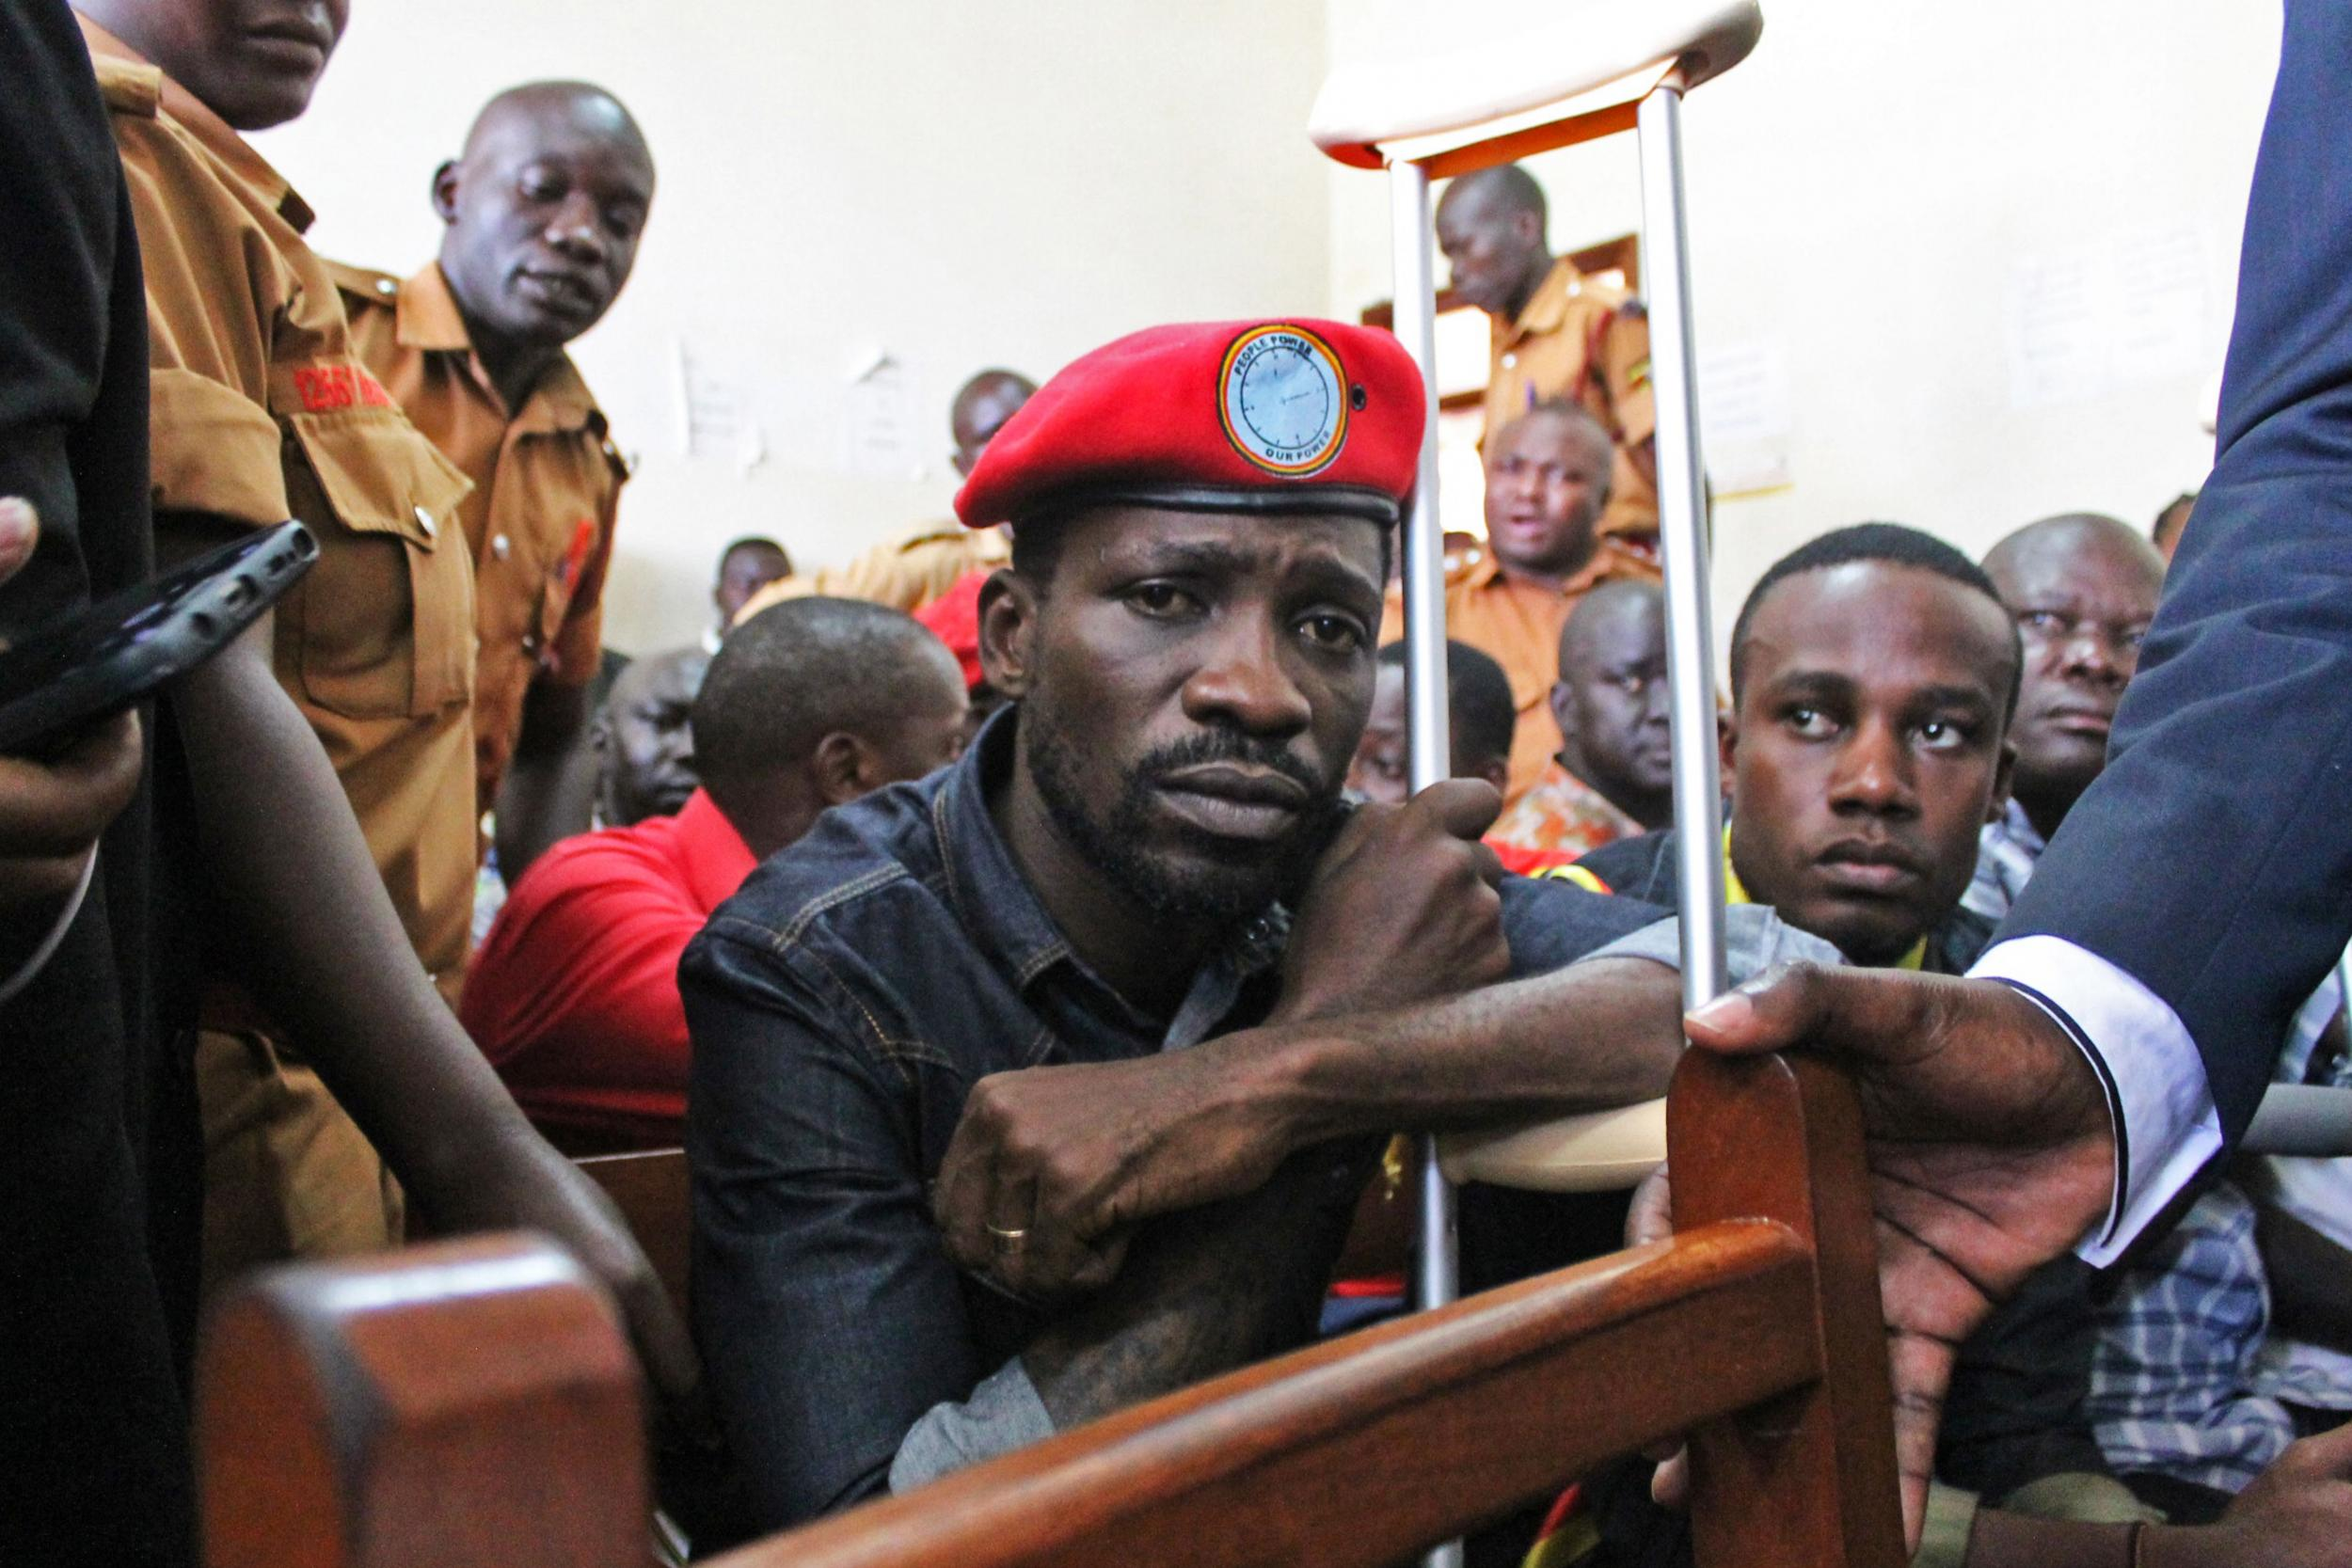 Pop star Bobi Wine arrives in US for treatment after 'brutal torture' for opposing Ugandan president